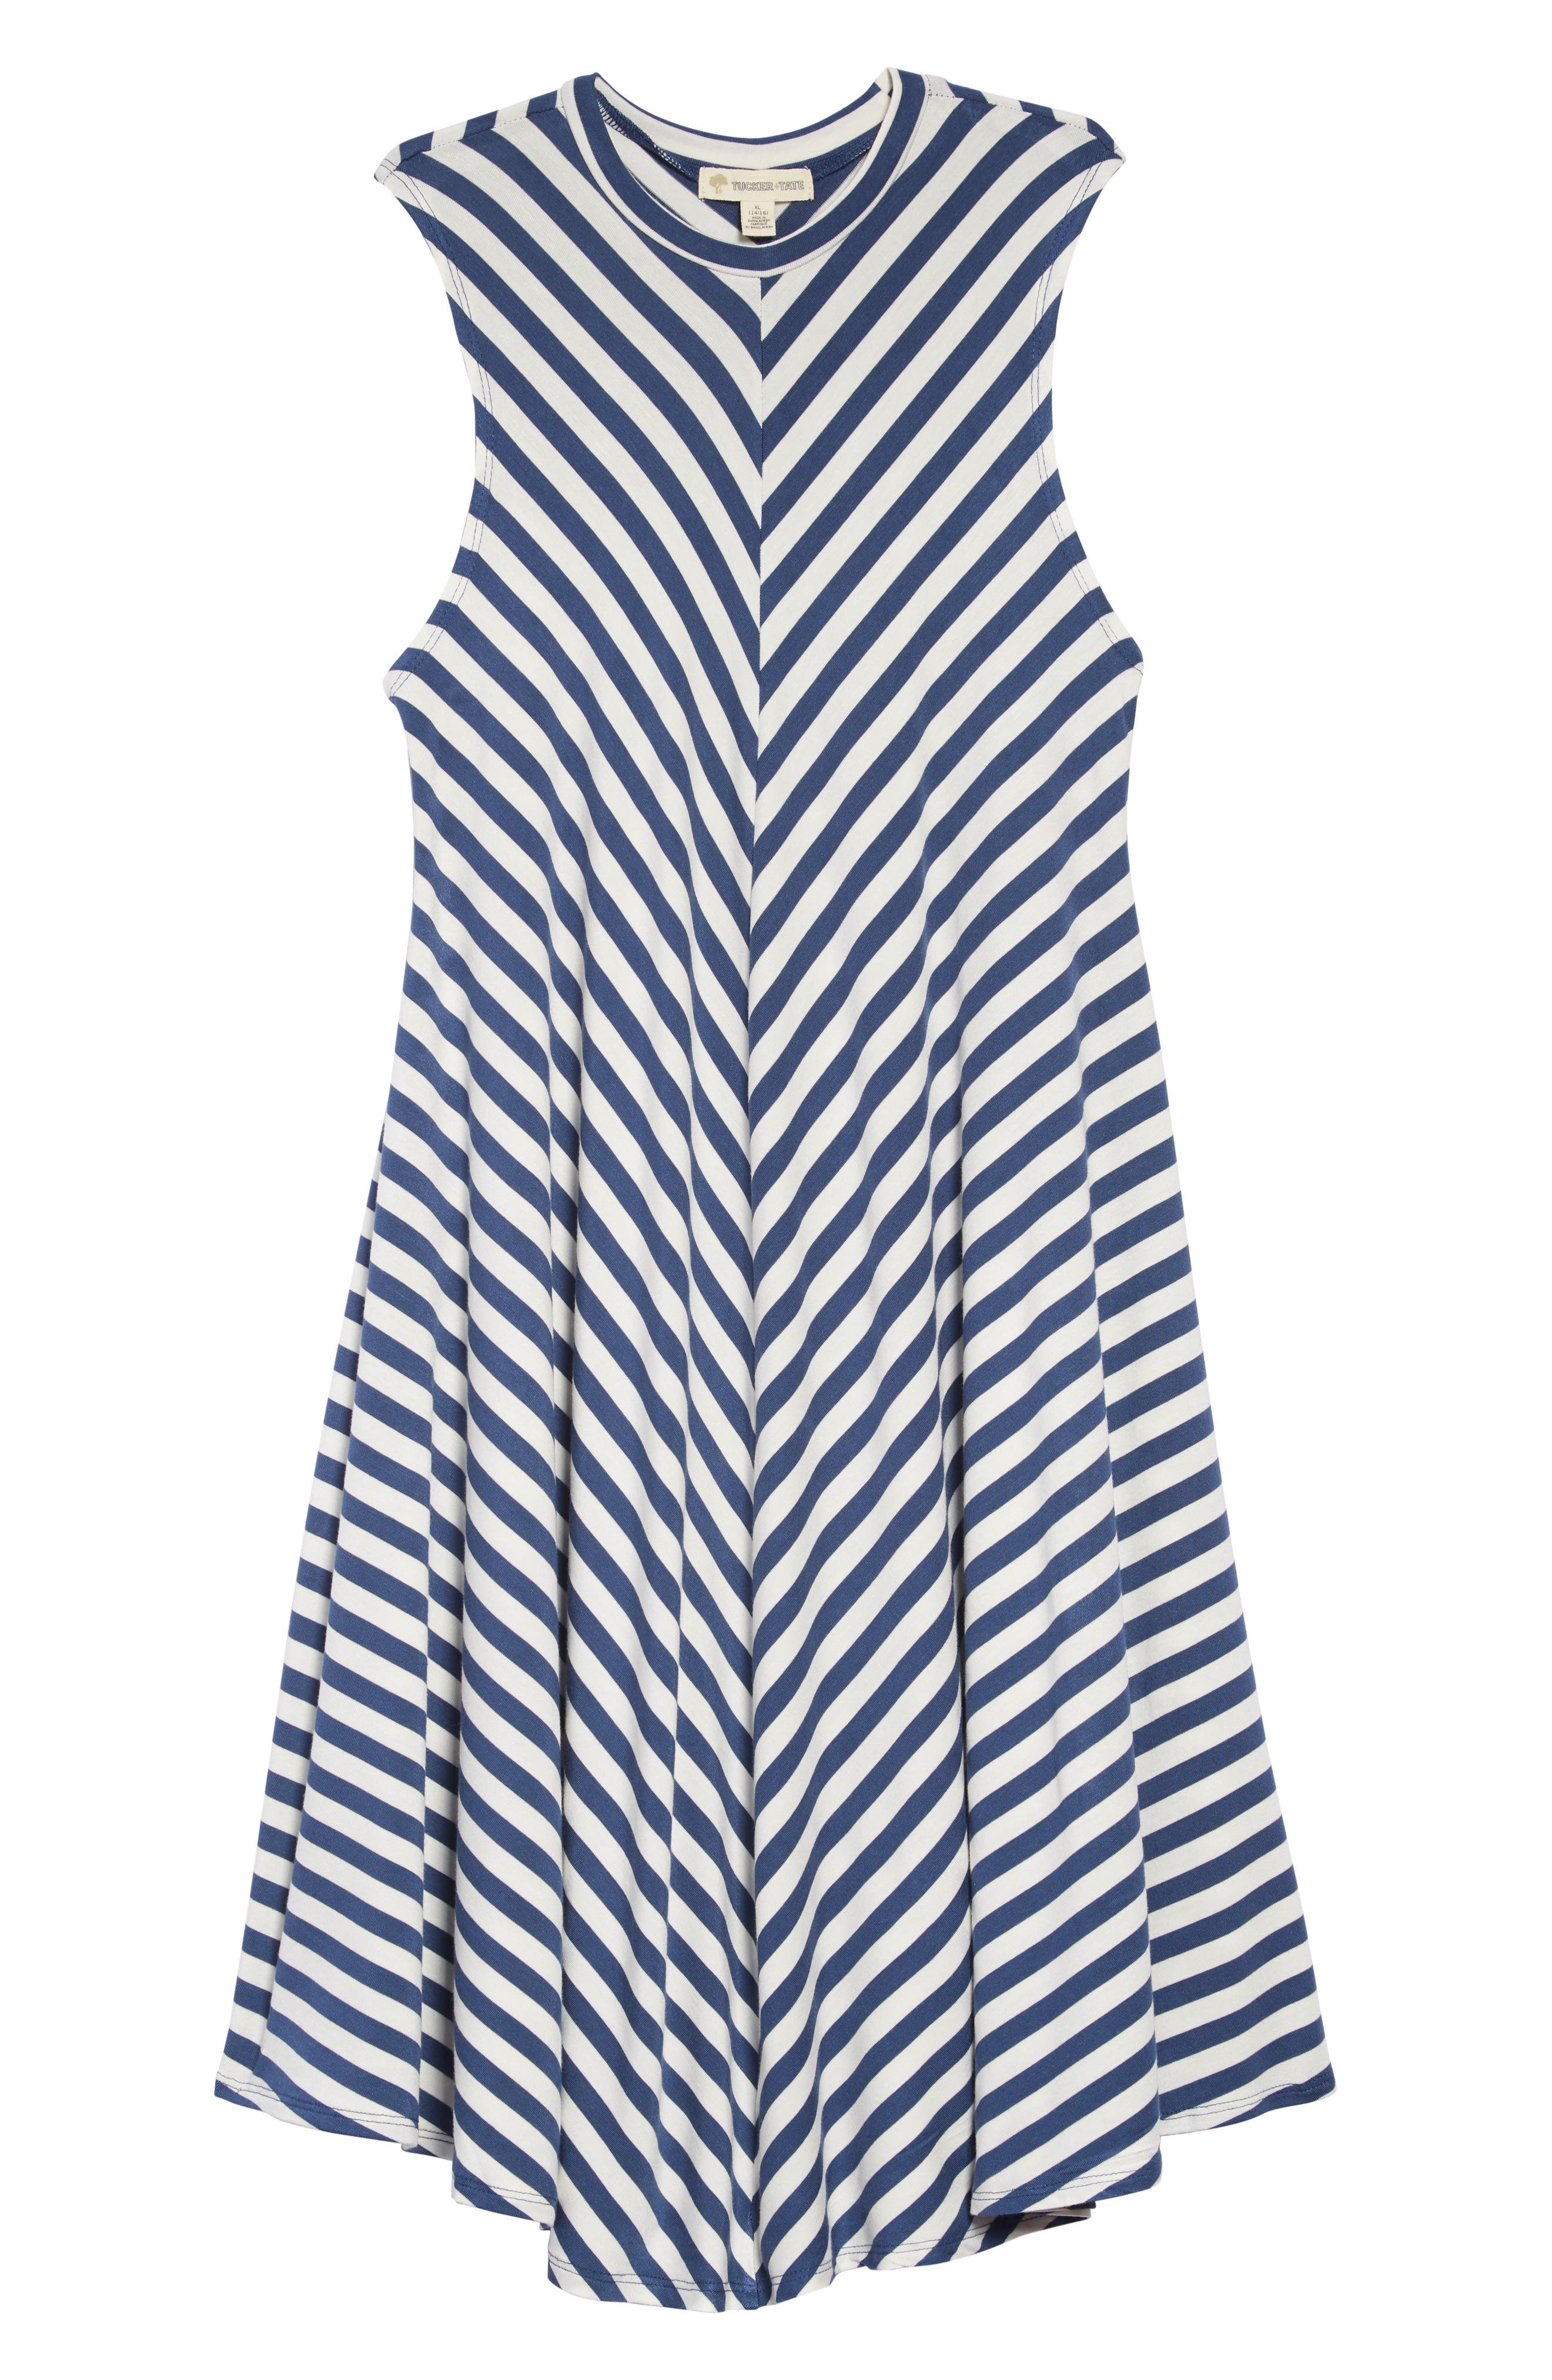 TUCKER + TATE, Print Sleeveless Knit Dress, Main thumbnail 1, color, NAVY DENIM- IVORY STRIPE